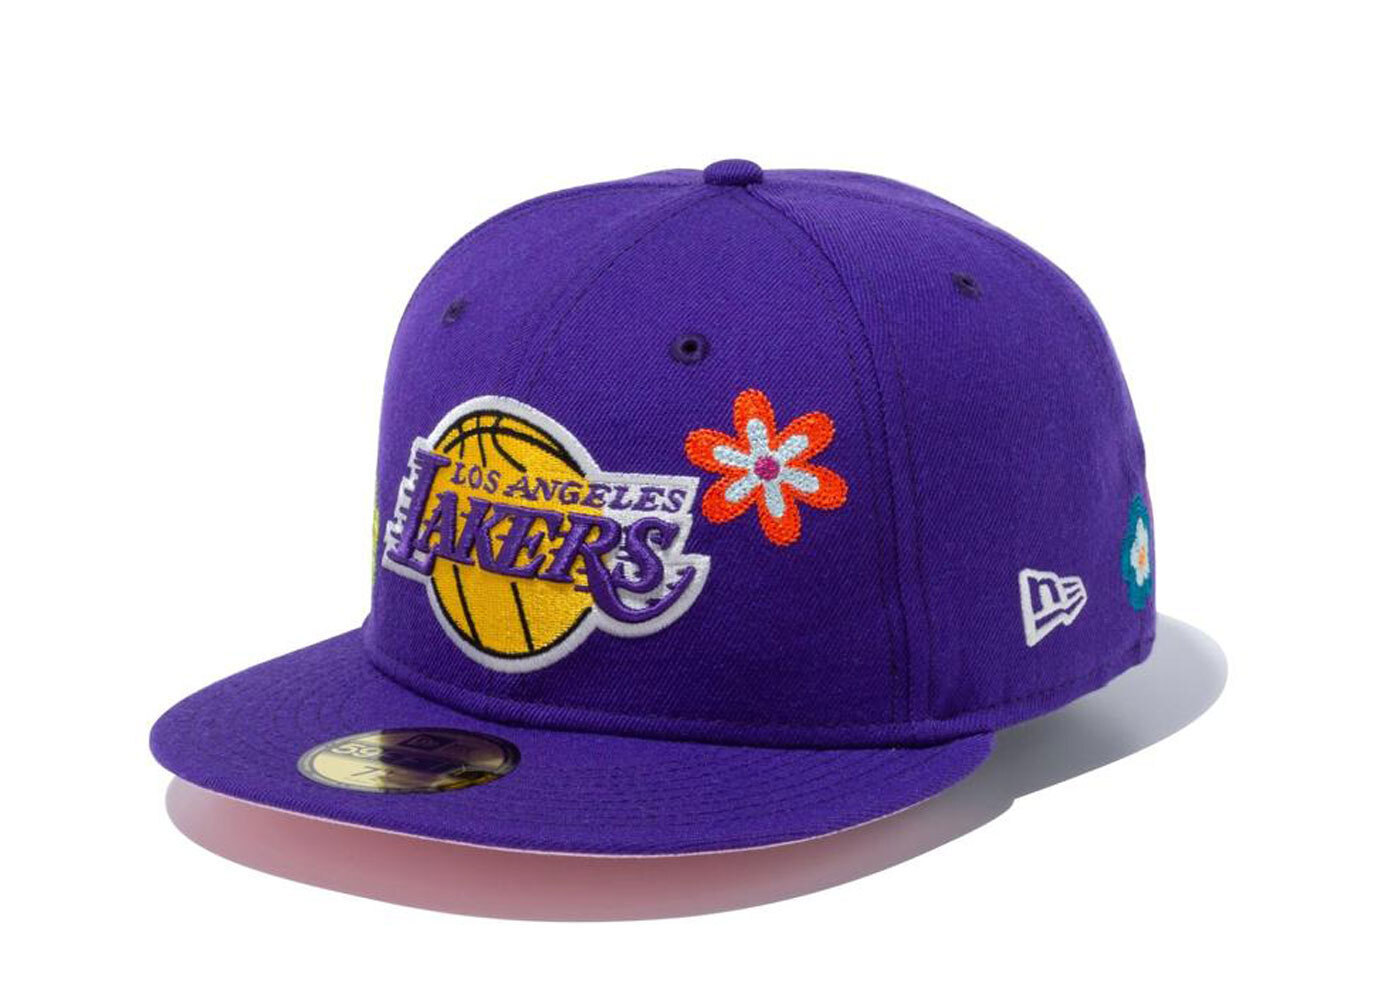 New Era 59FIFTY Chain Stitch Floral Los Angeles Lakers Pink Under Visor Purpleの写真